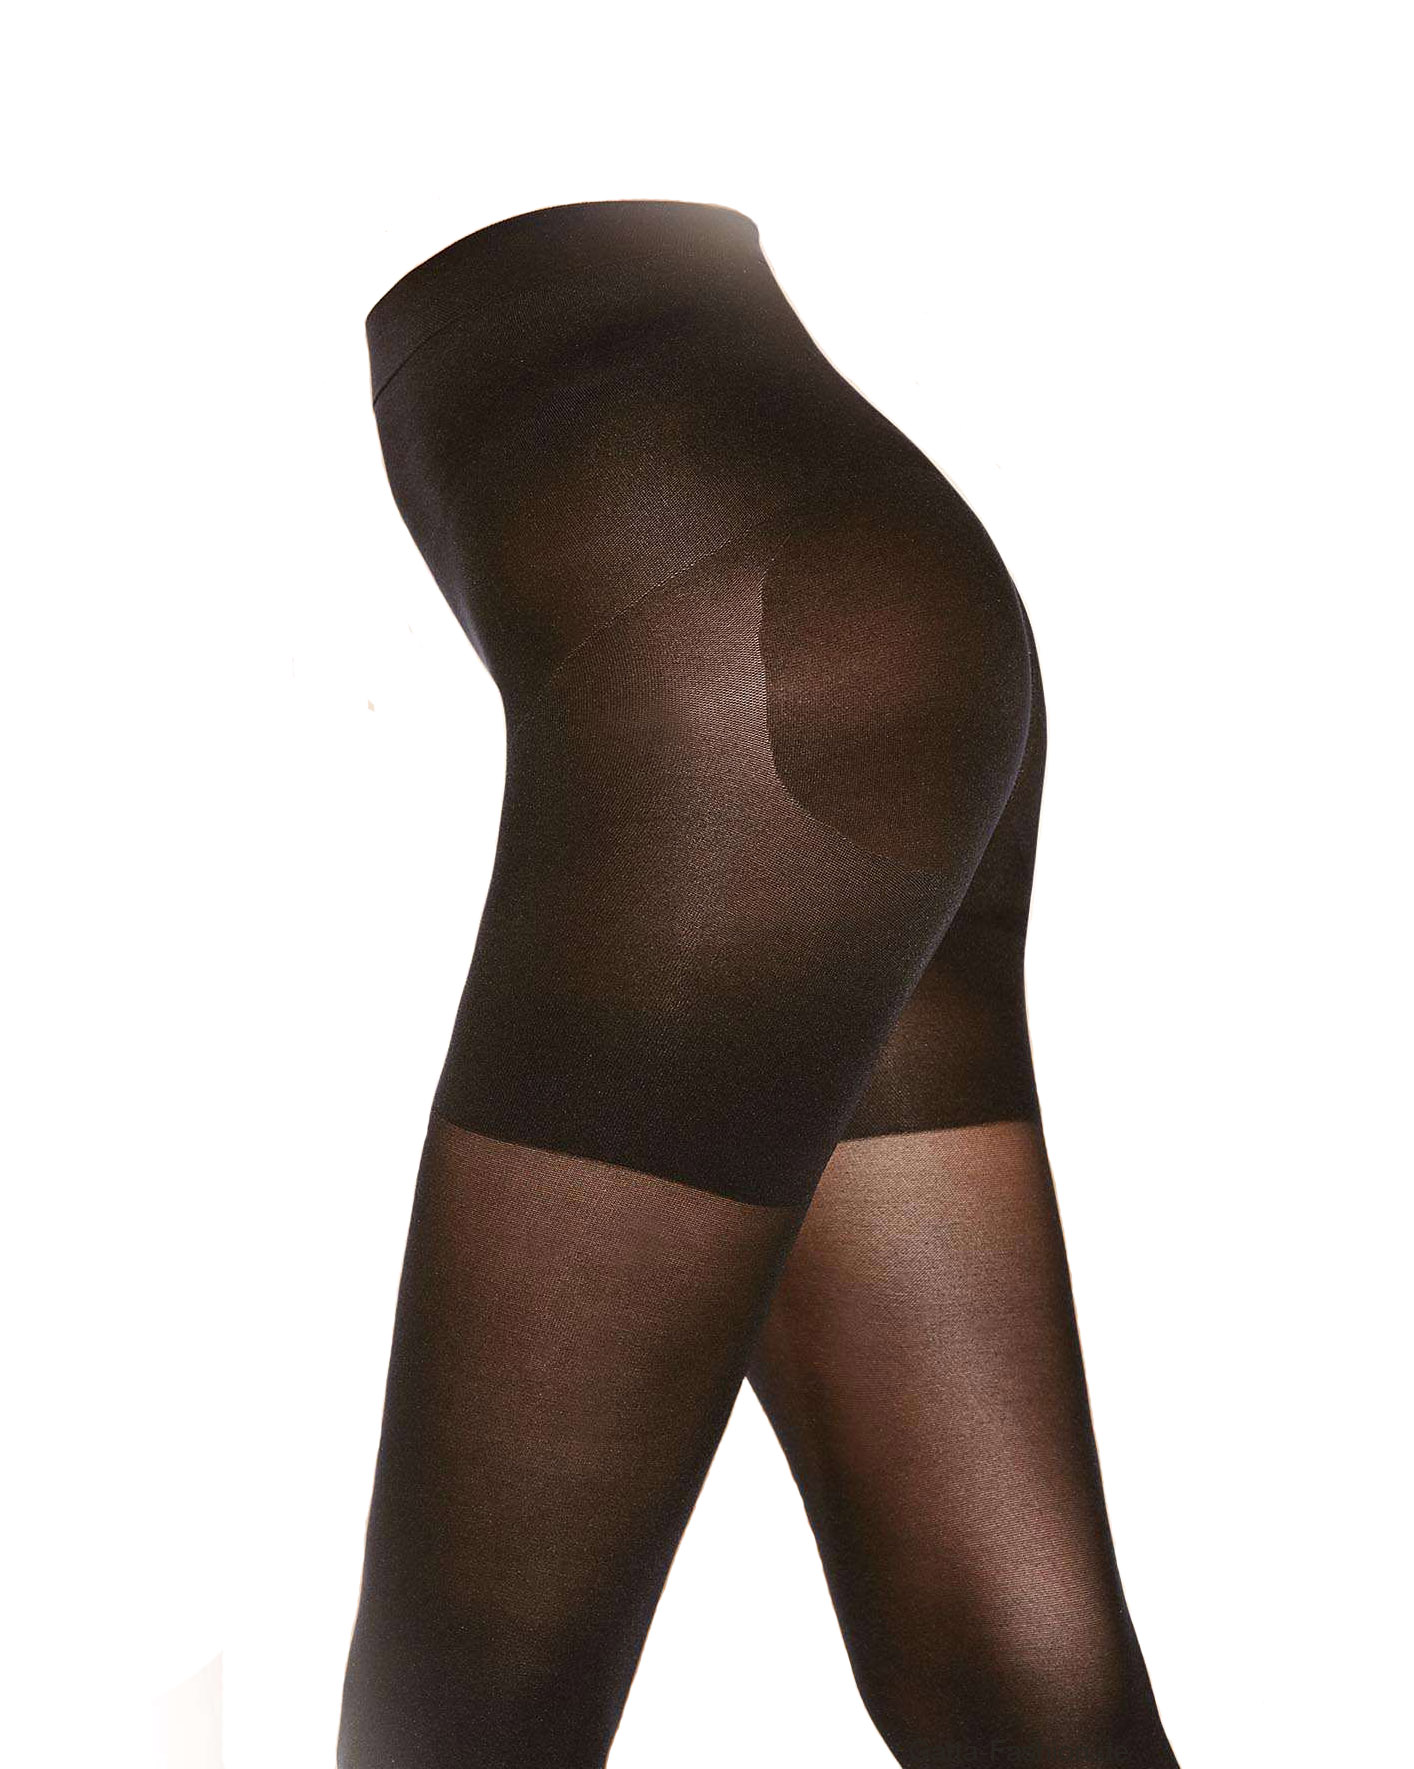 Gatta Bye Cellulite Leggings - 70den